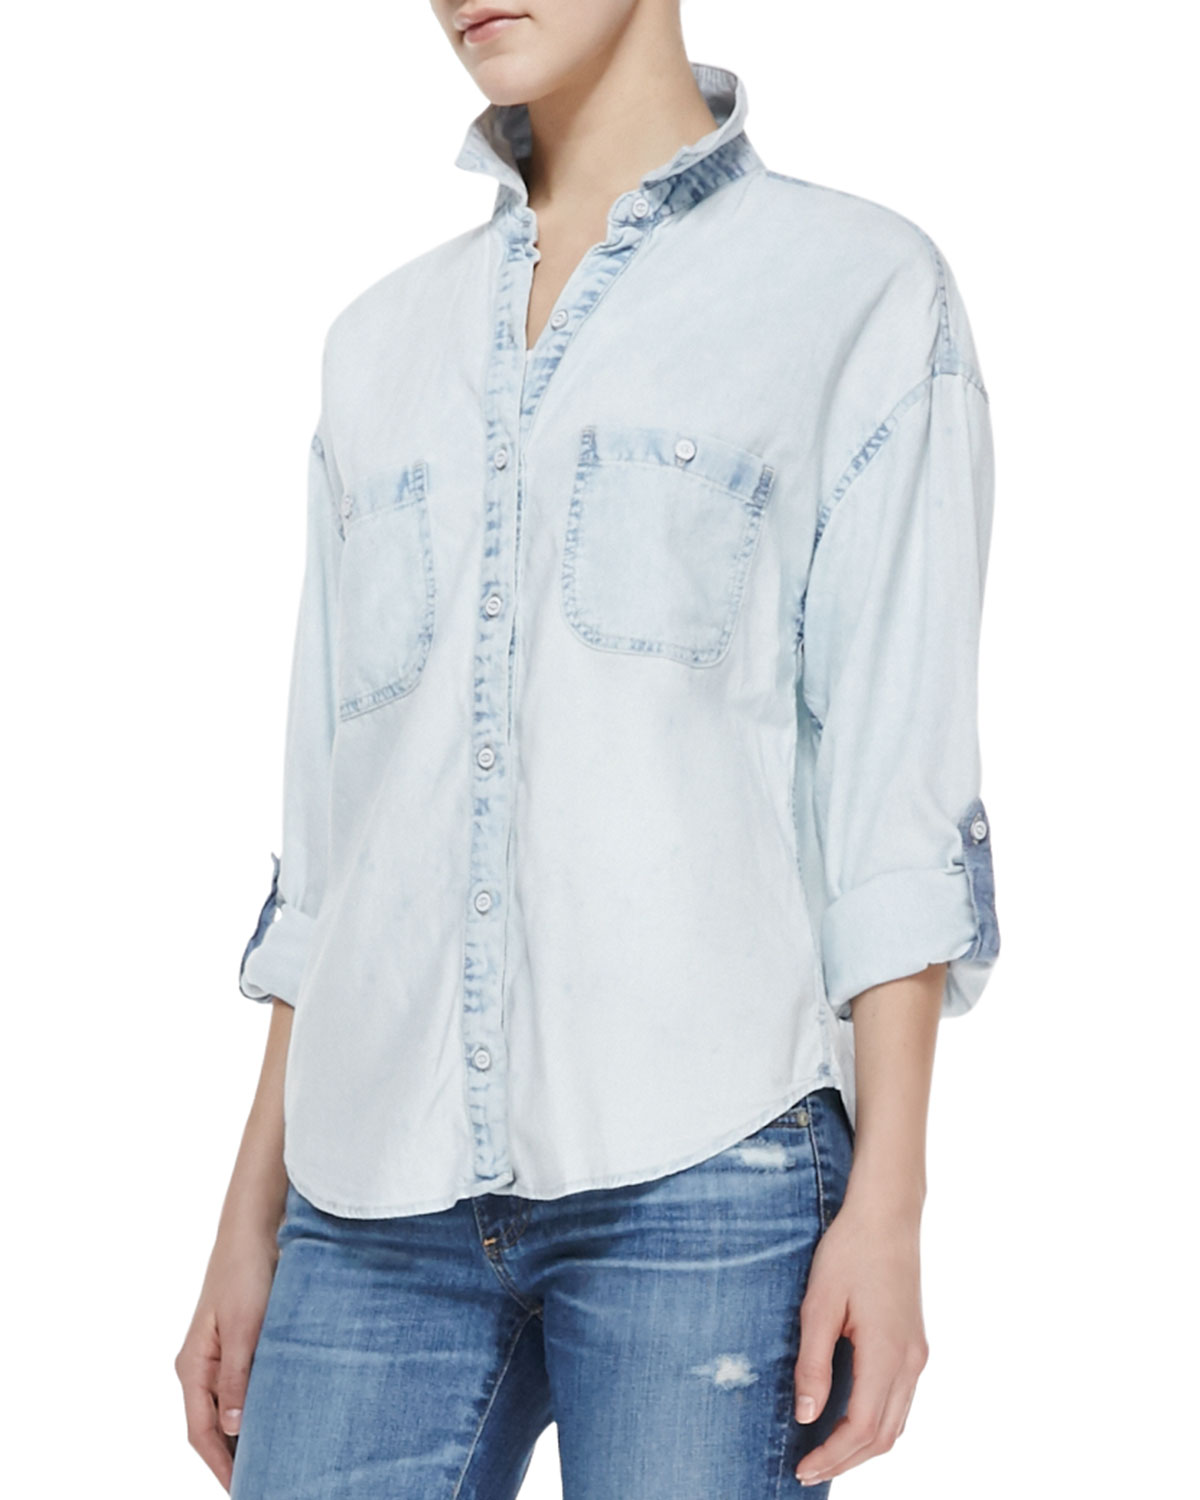 Womens Marcel Long Sleeve Shirt   AG Adriano Goldschmied   Dispersion (SMALL)